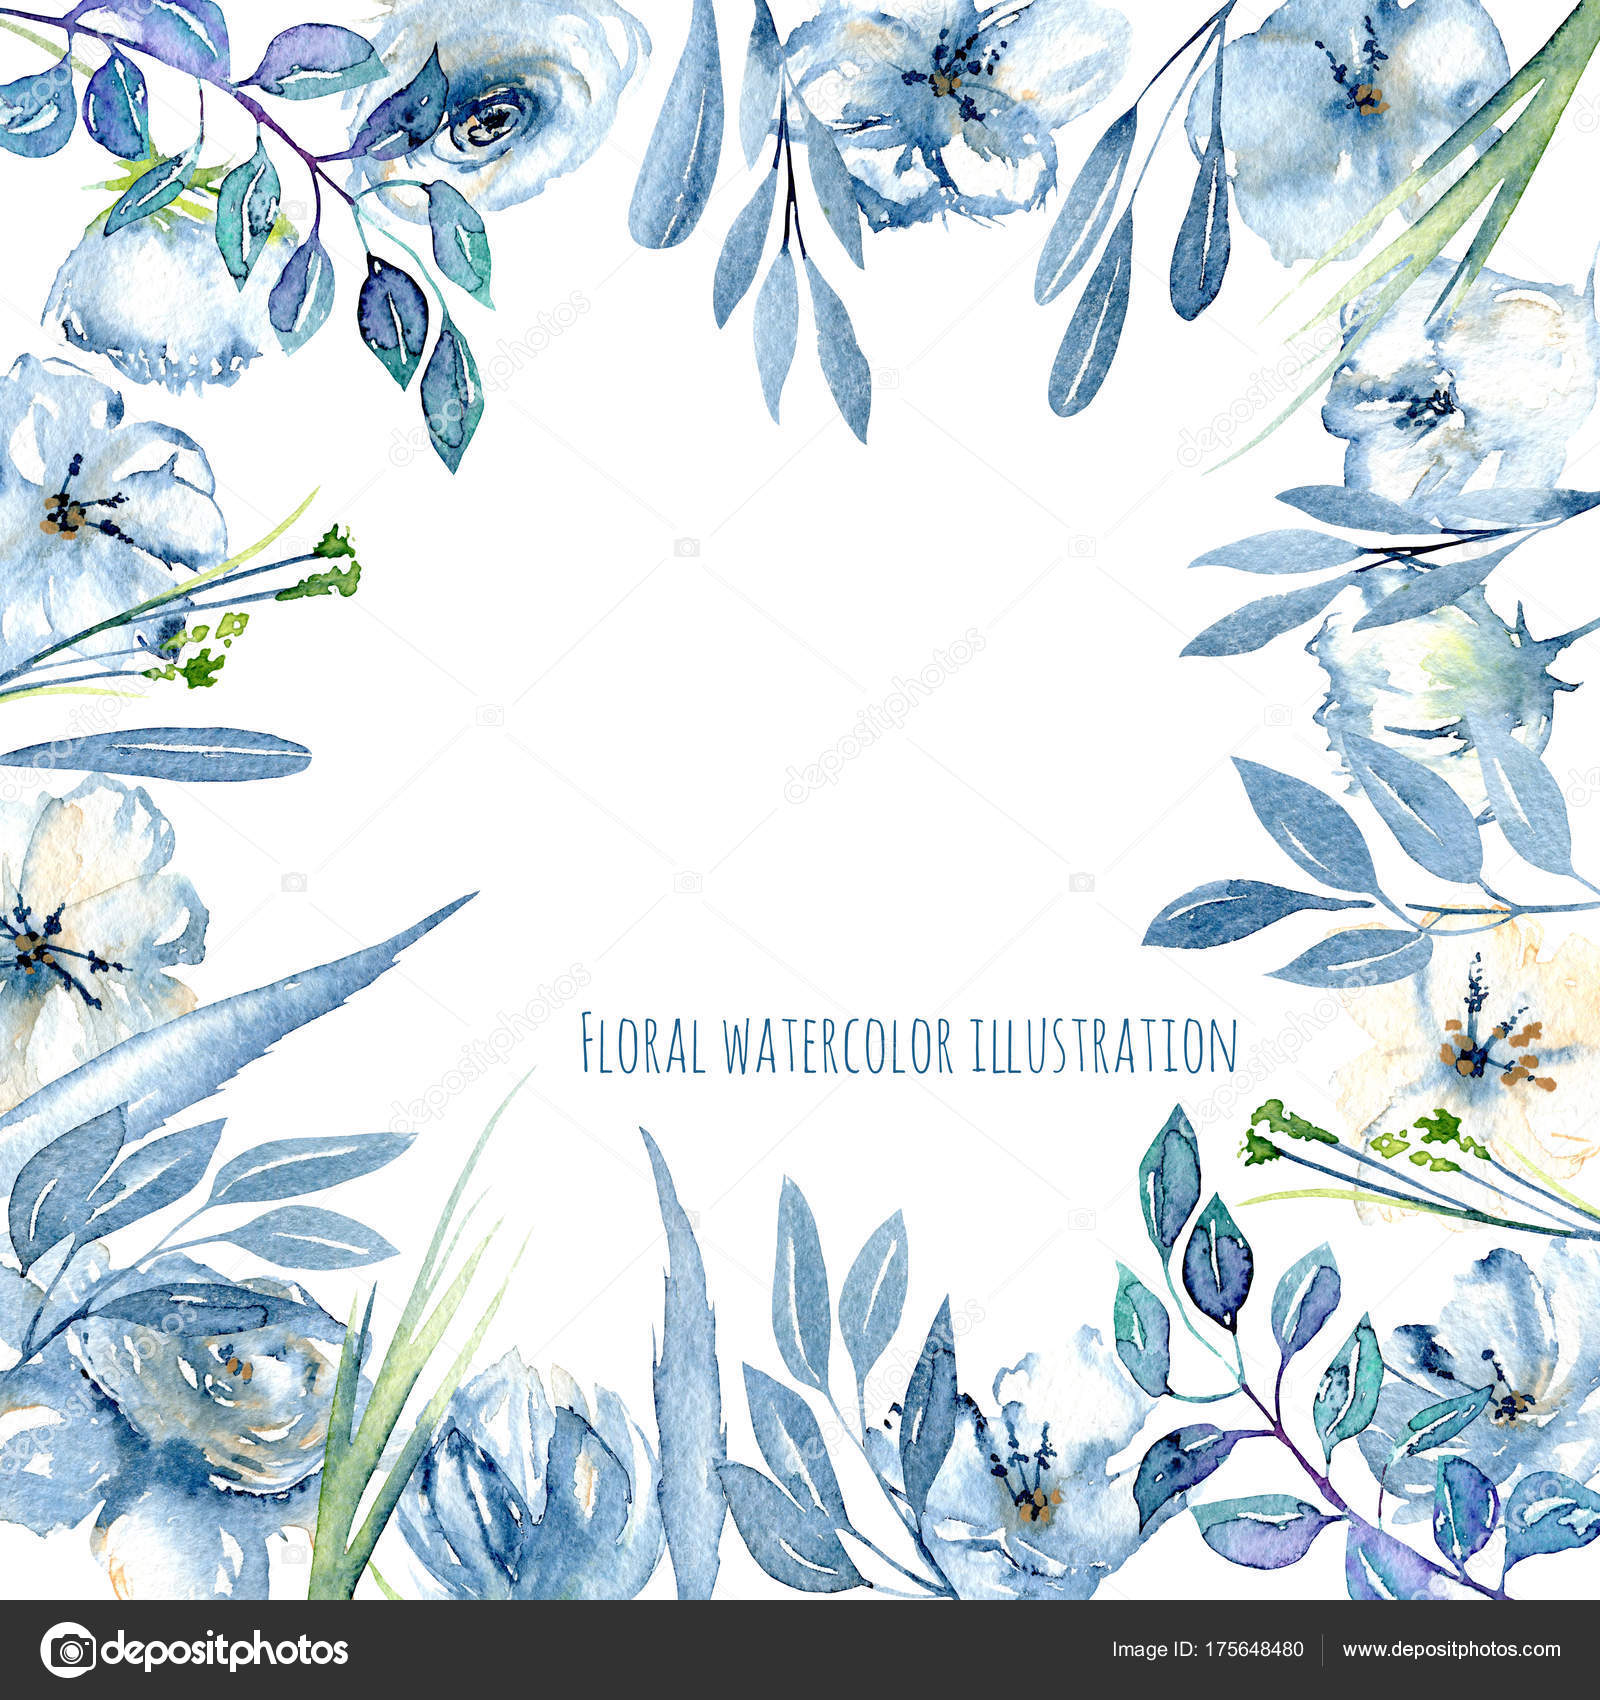 Frame Border With Simple Watercolor Blue Roses And Wildflowers Leaves Grass Hand Painted On A White Background Template Floral Design For Cards